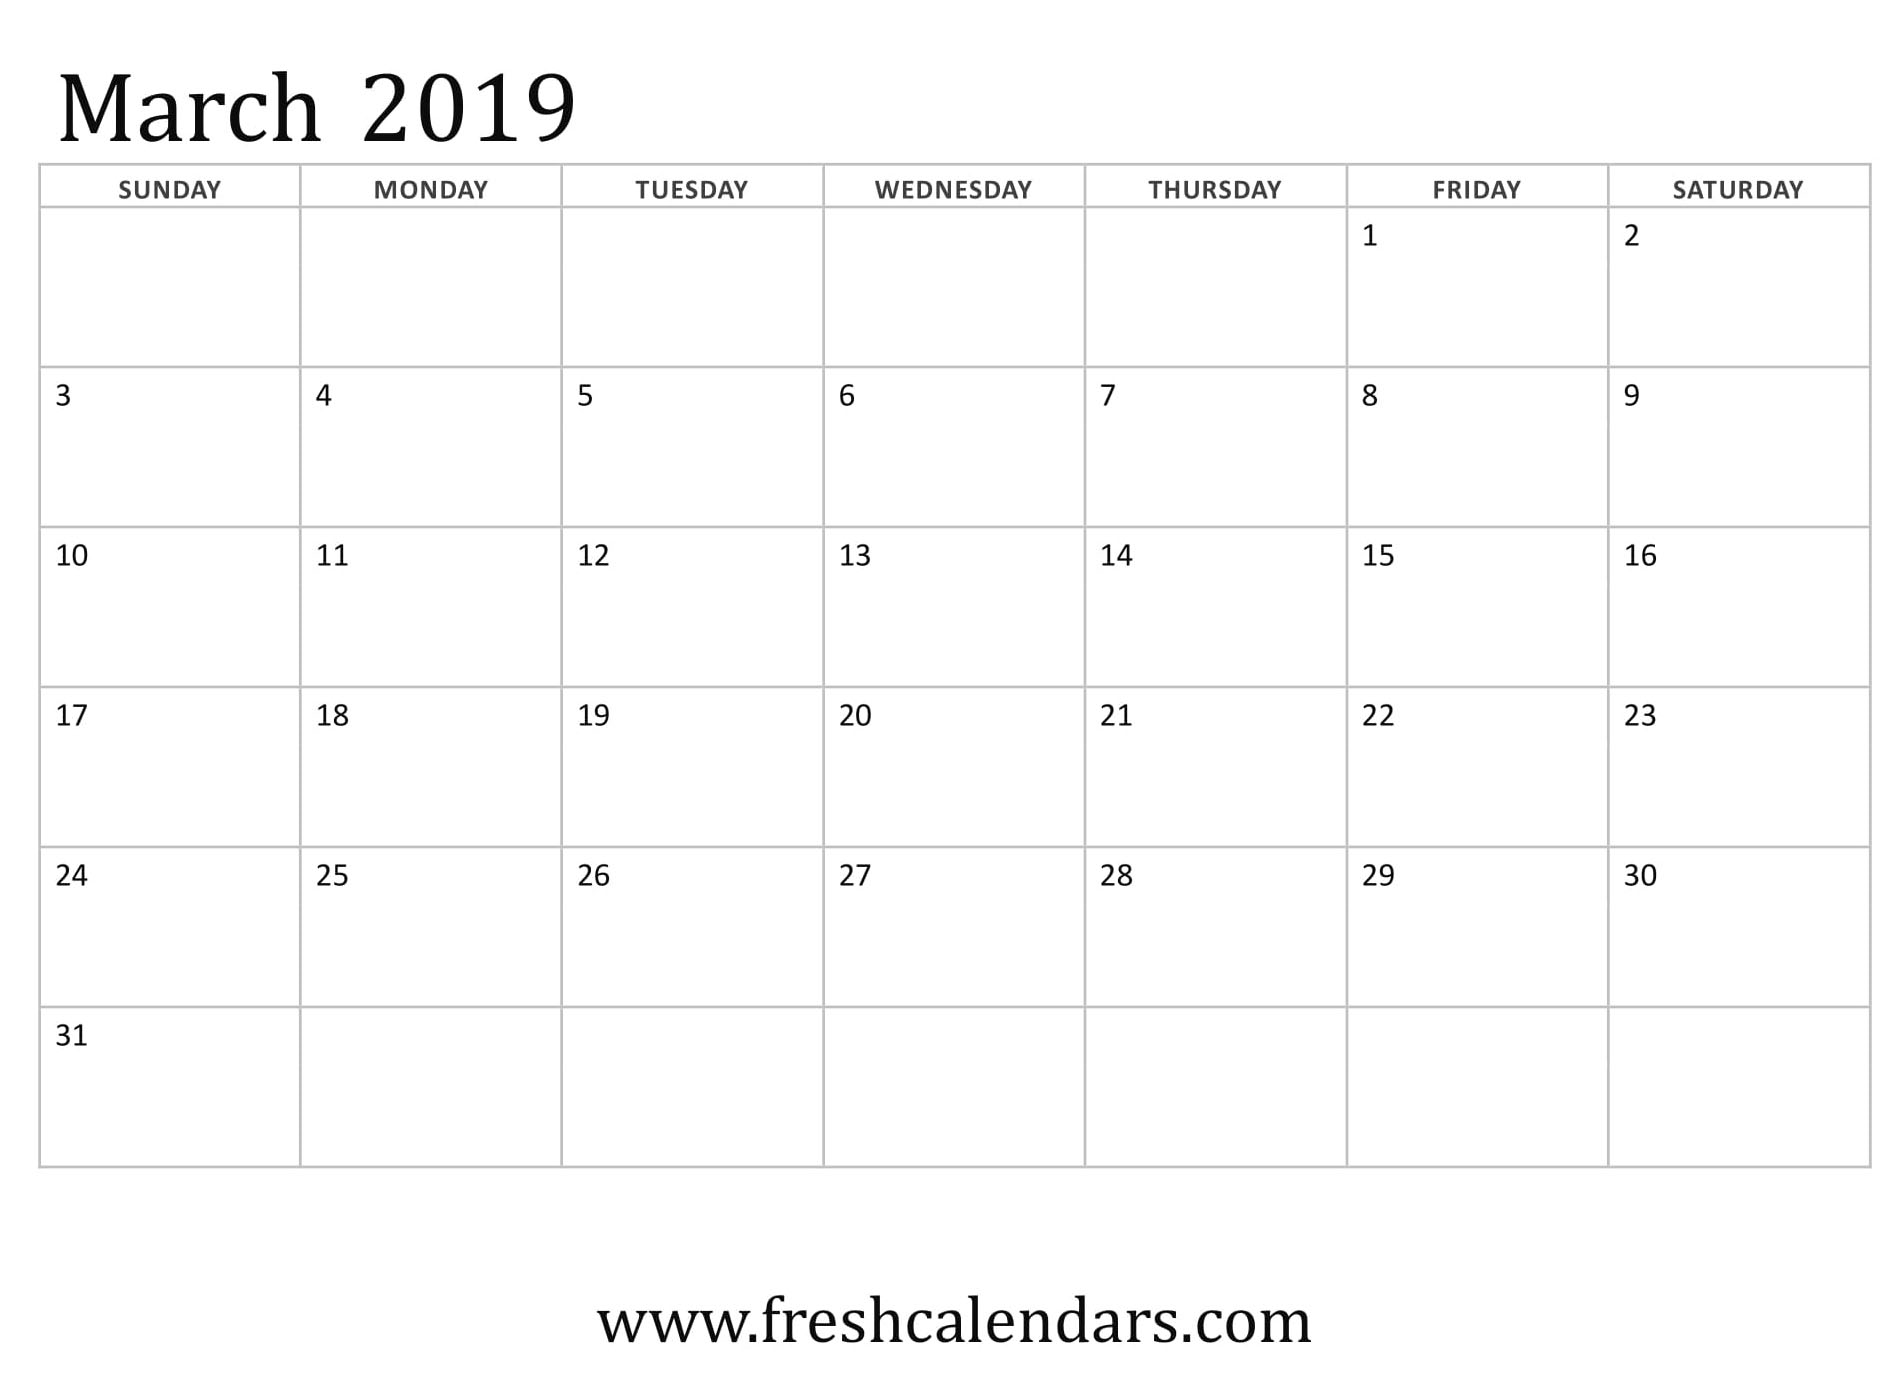 Printable Calendar March 2019.Vertex March Calendar 2019 Printable Free Printable Calendar